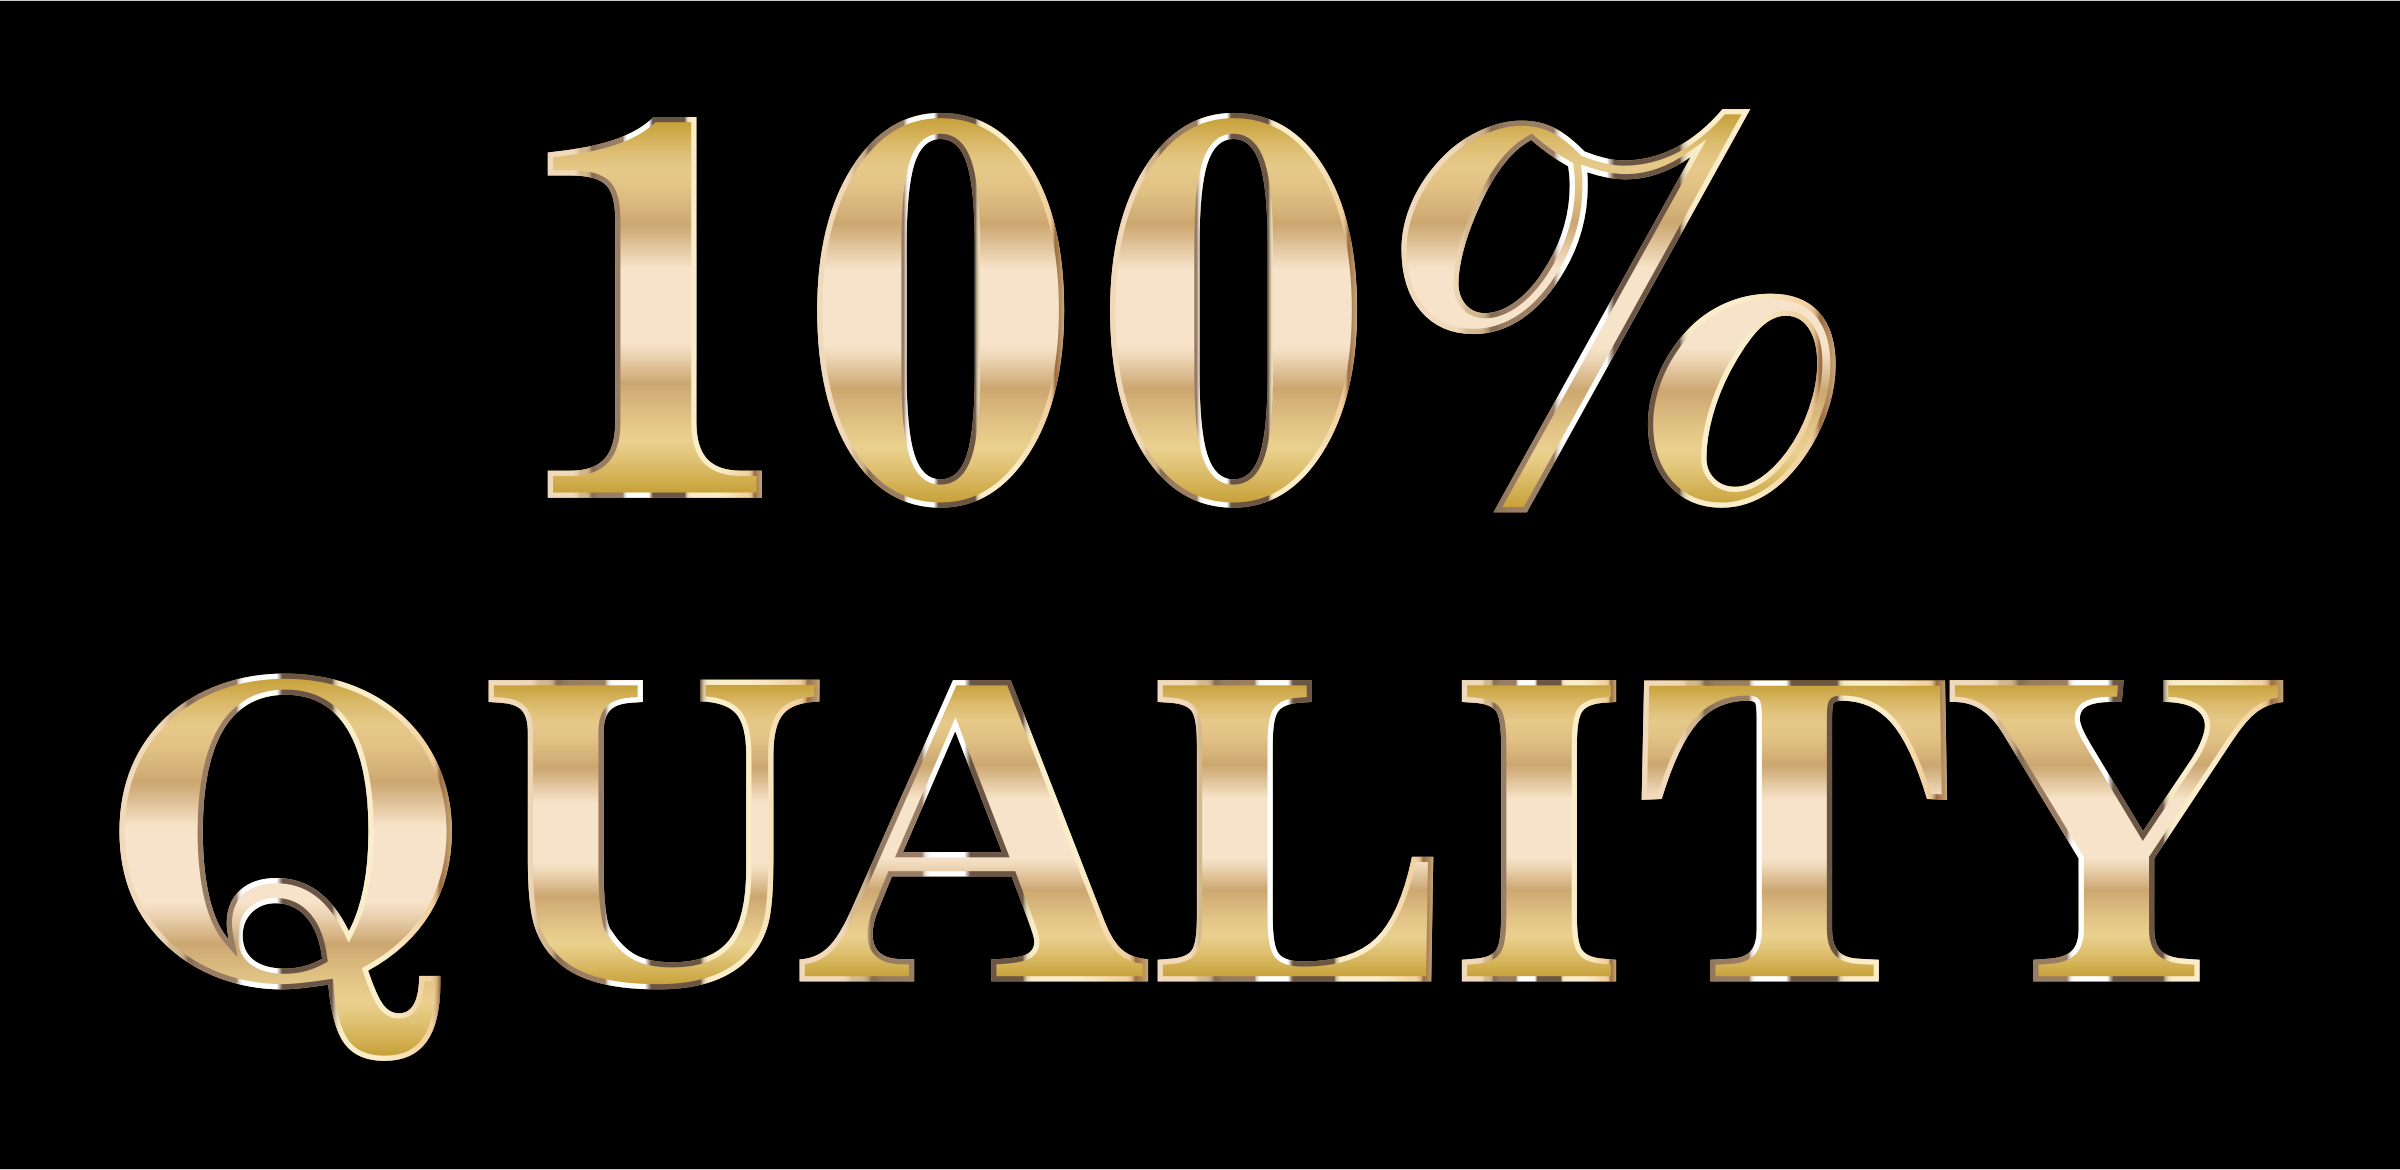 100 clipart quality. Percent typography big image